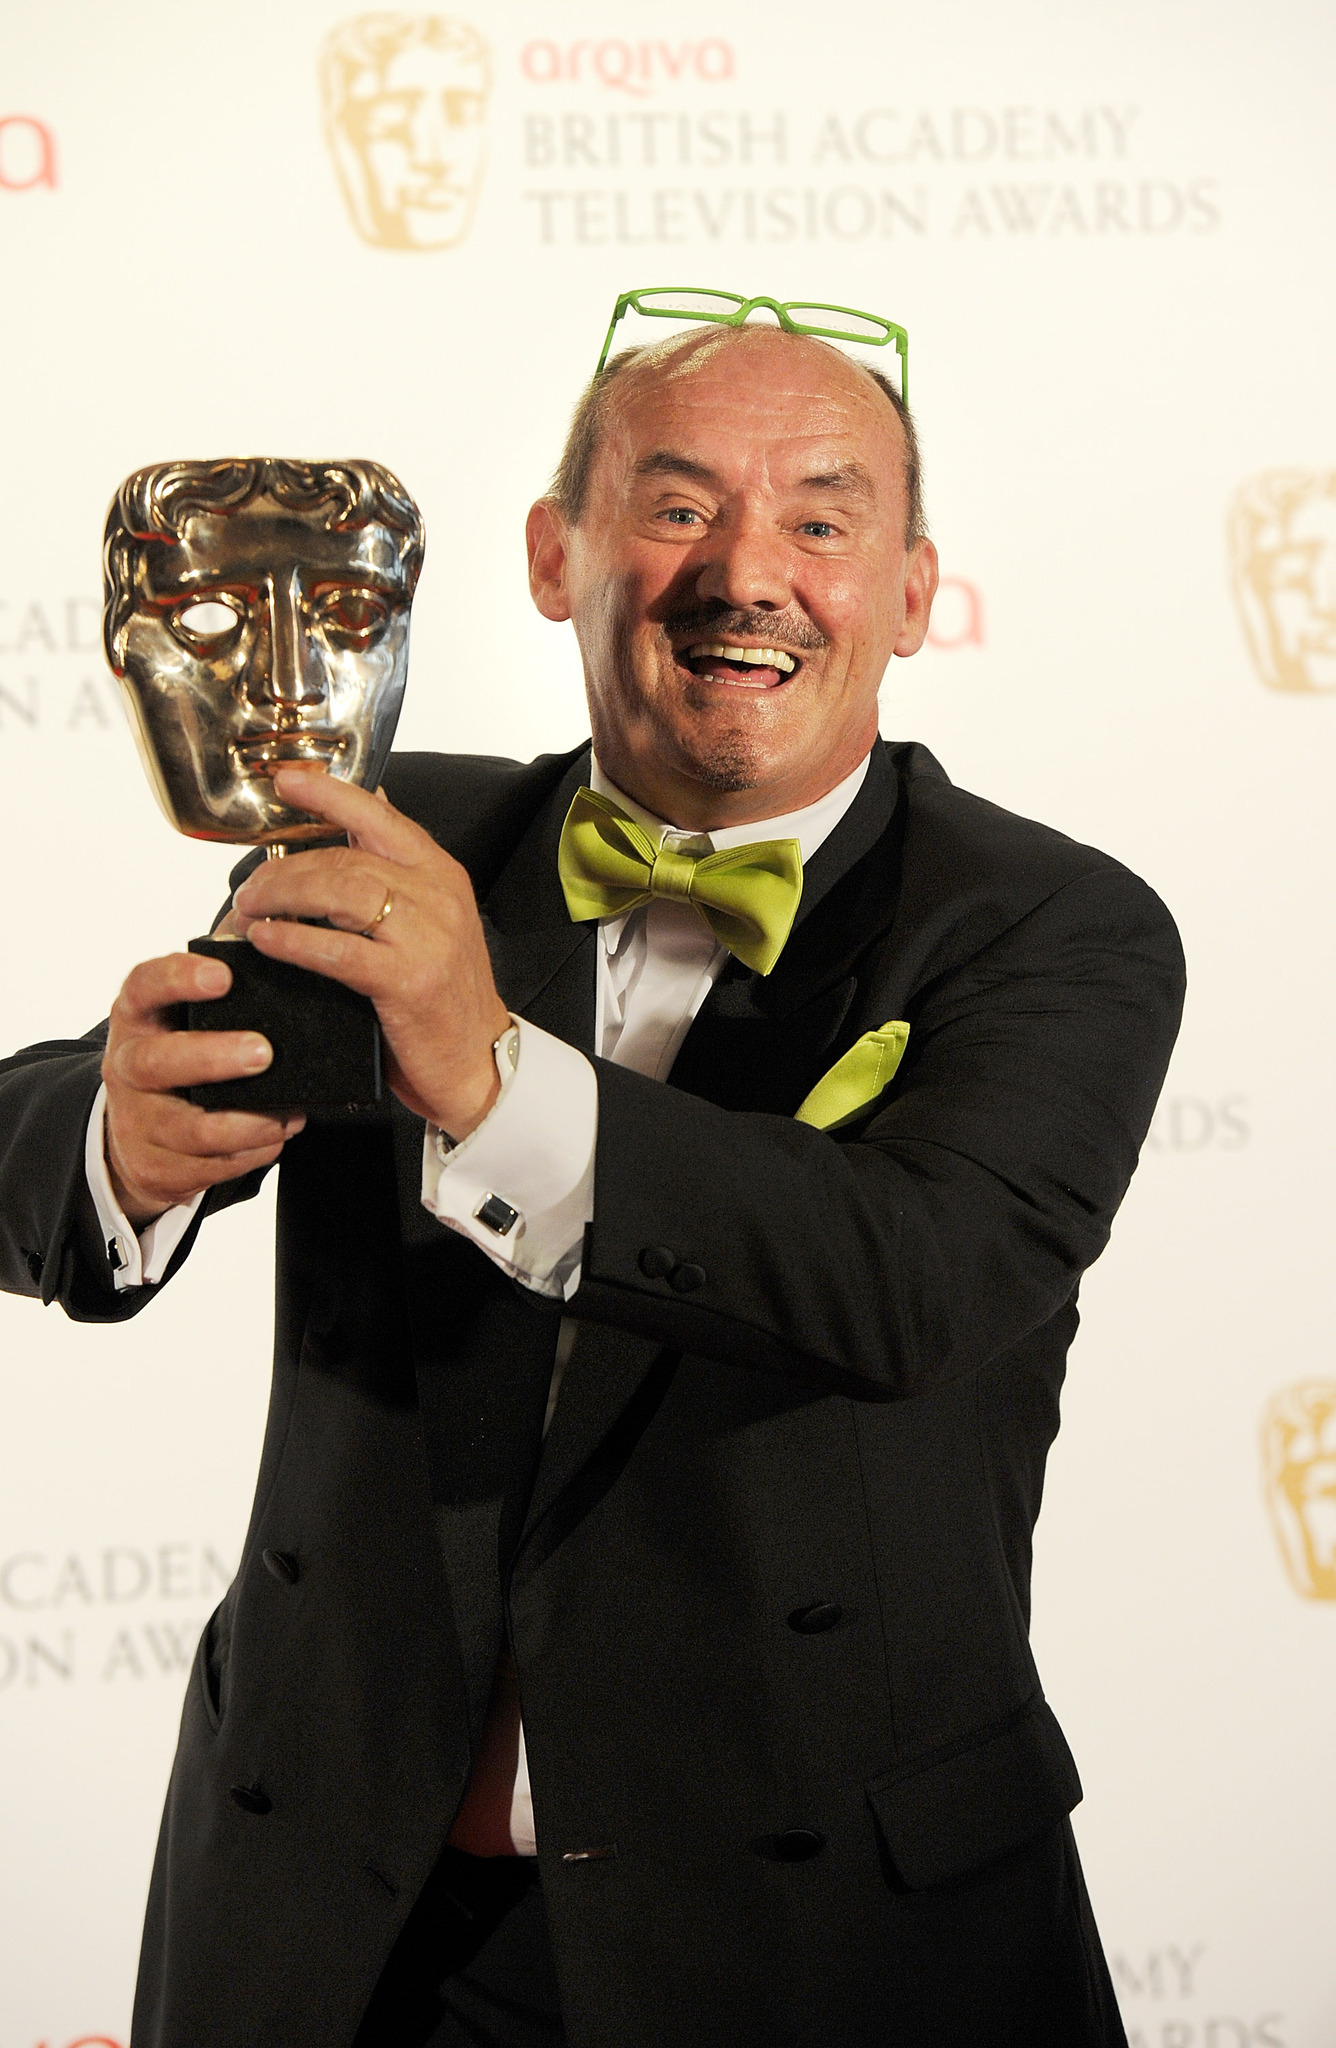 Brendan O'Carroll at an event for Mrs. Brown's Boys (2011)